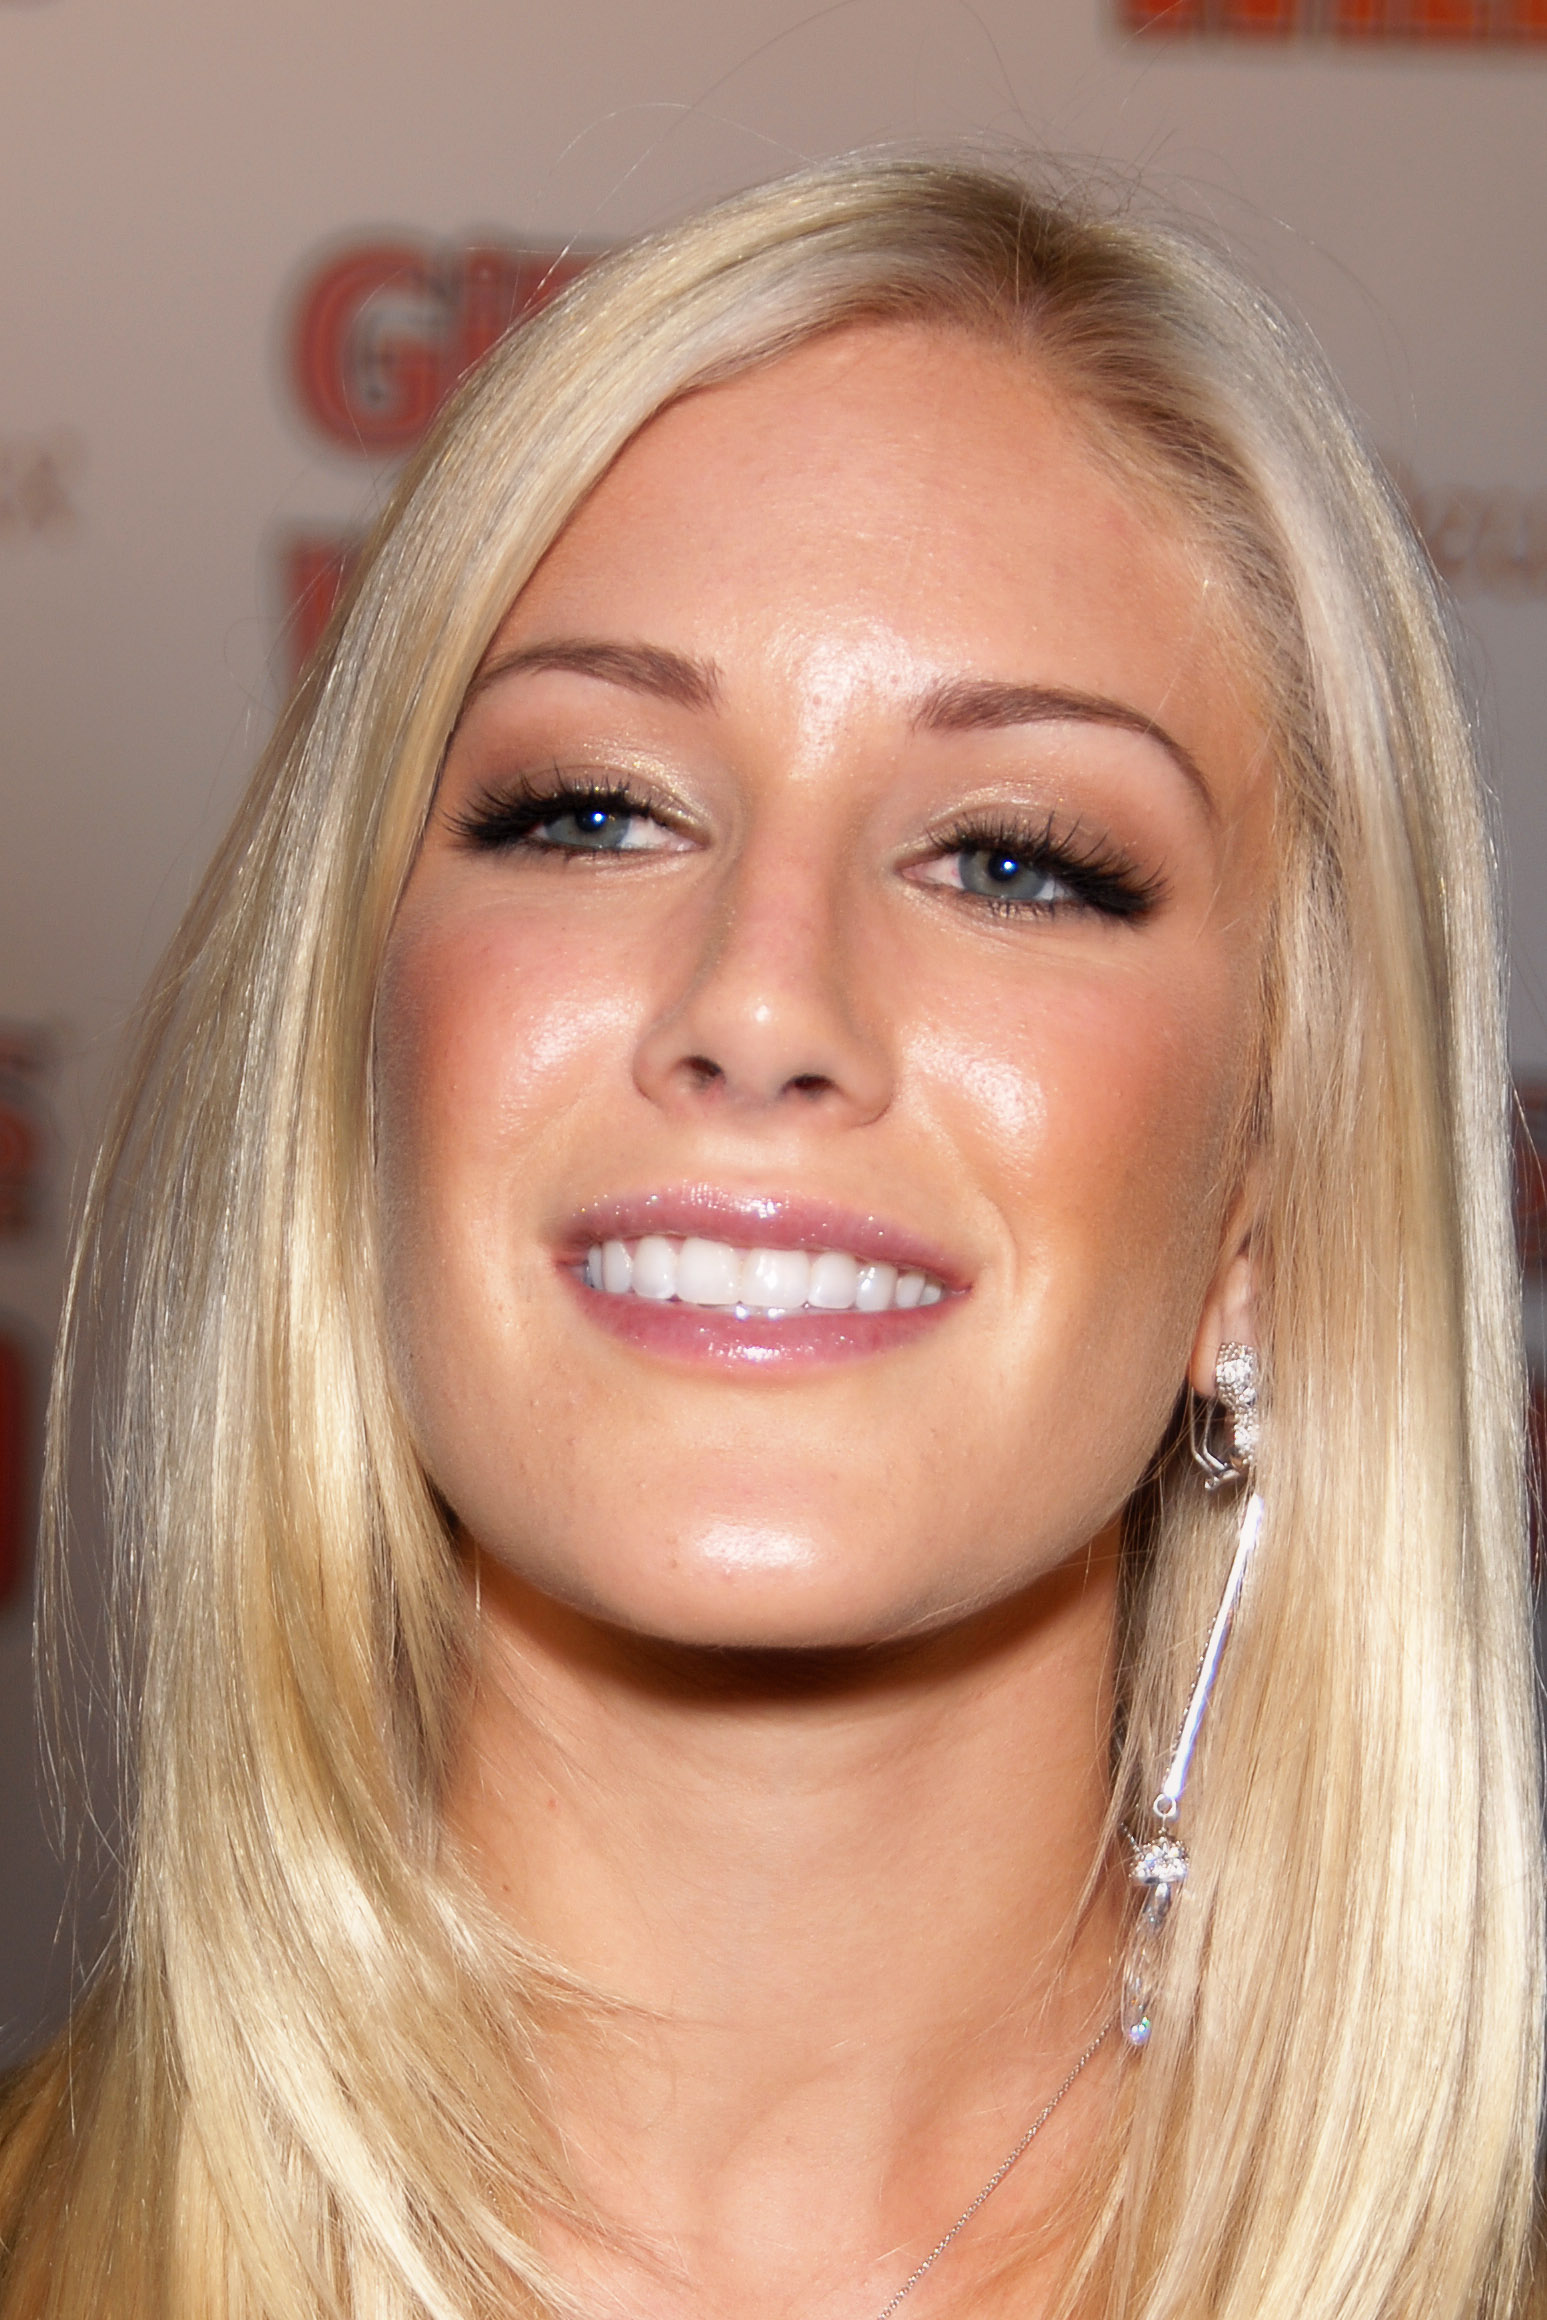 Heidi Montag Breast Reduction - LocateADoc.com